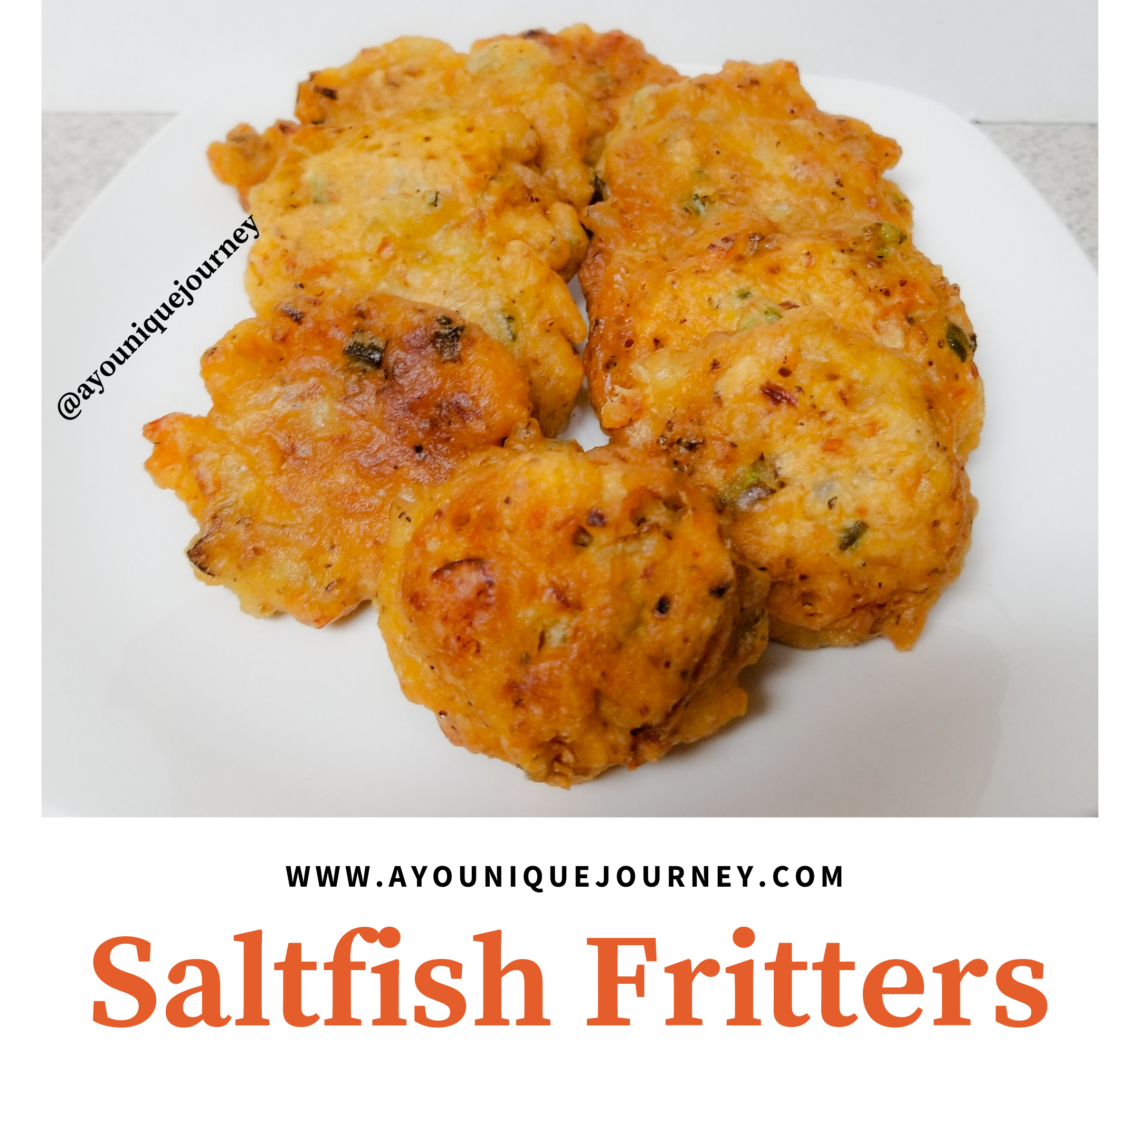 Some flavorful Saltfish Fritters on a plate.